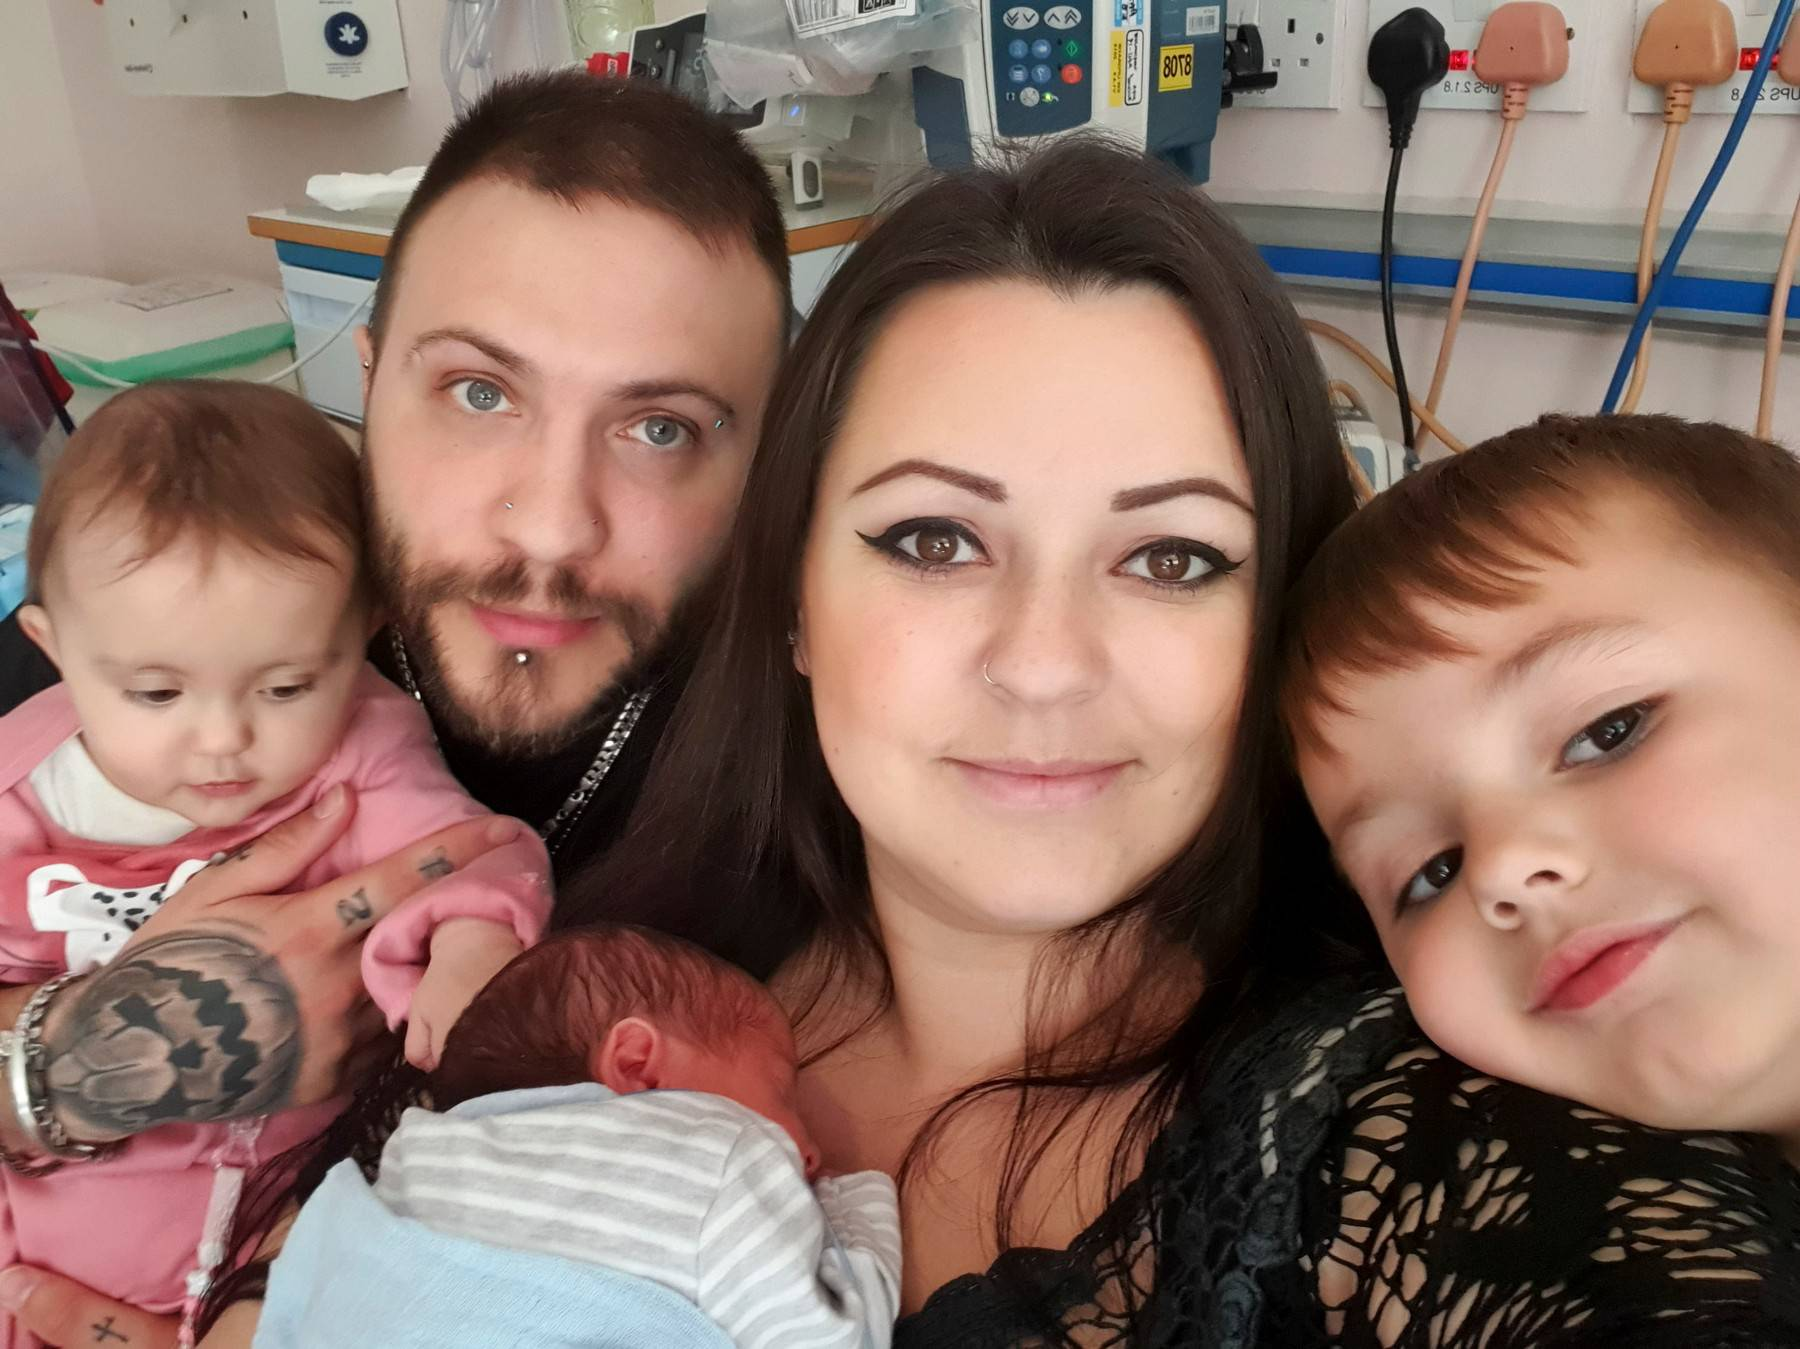 MUM WHO HAS TWO MIRACLE BABIES IN 12 MONTHS, AFTER 9 MISCARRIAGES, IS EXCITED TO CELEBRATE FAMILY CHRISTMAS AT HOME